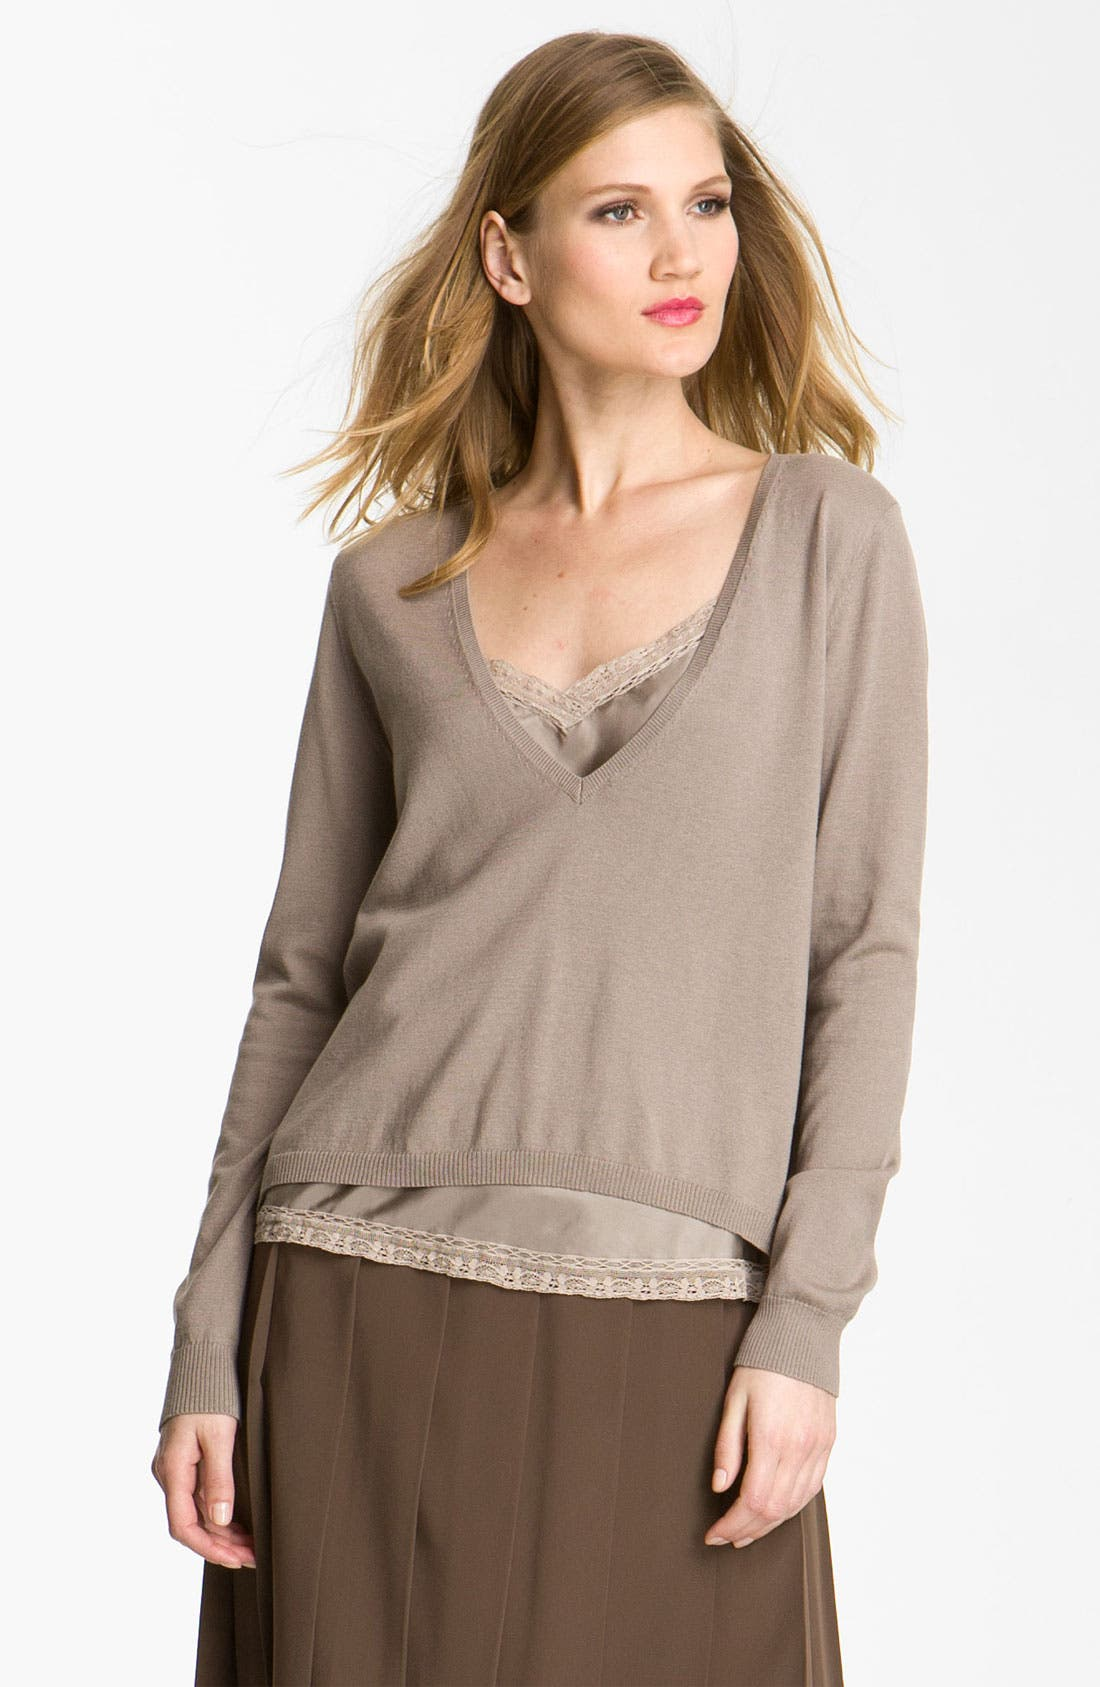 Alternate Image 1 Selected - Weekend Max Mara 'Opale' Sweater & Camisole